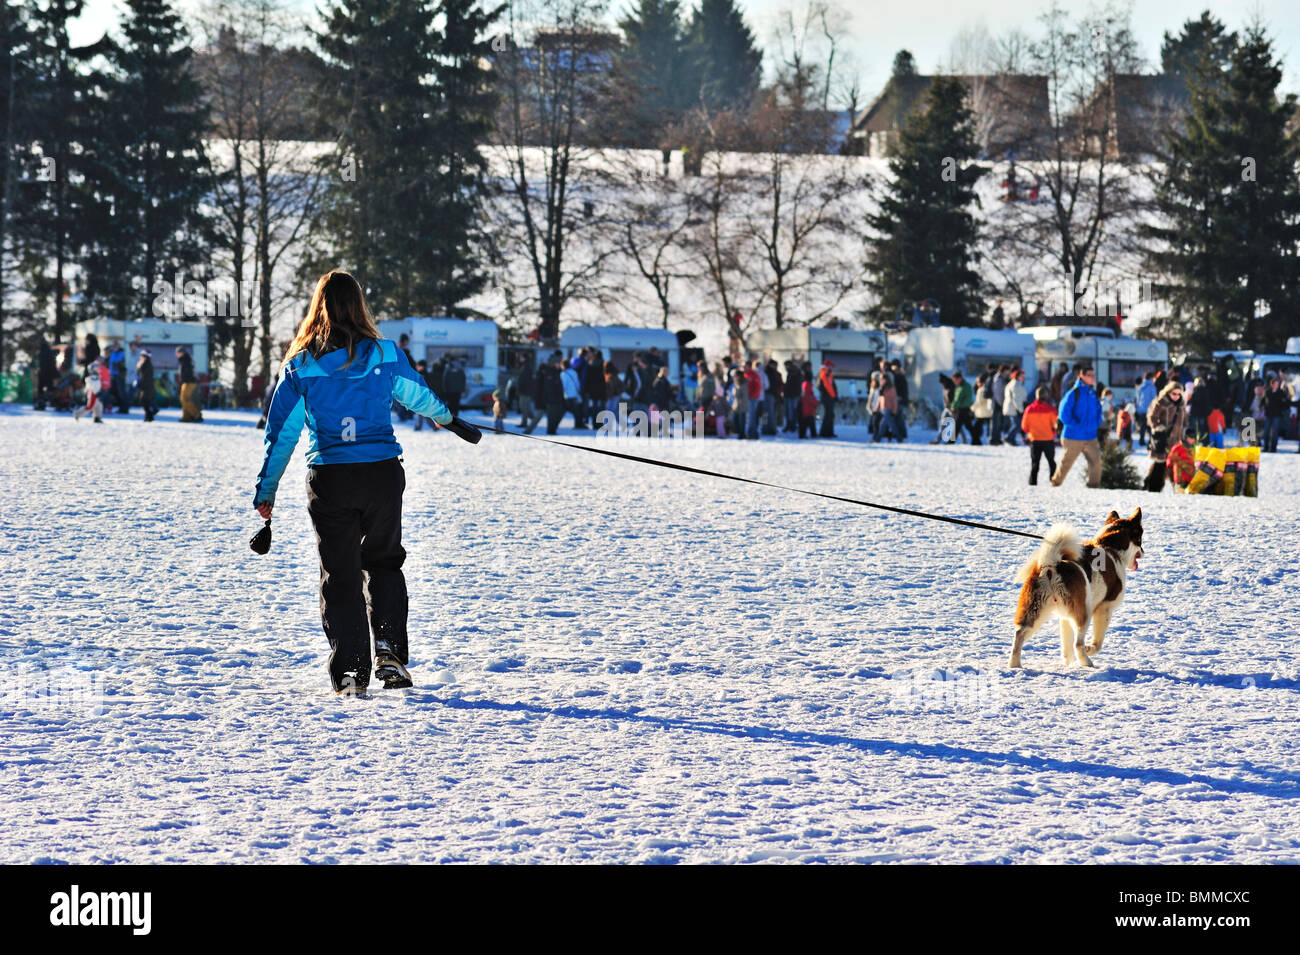 Woman walking her dog in the snow, dog pulling away - Stock Image